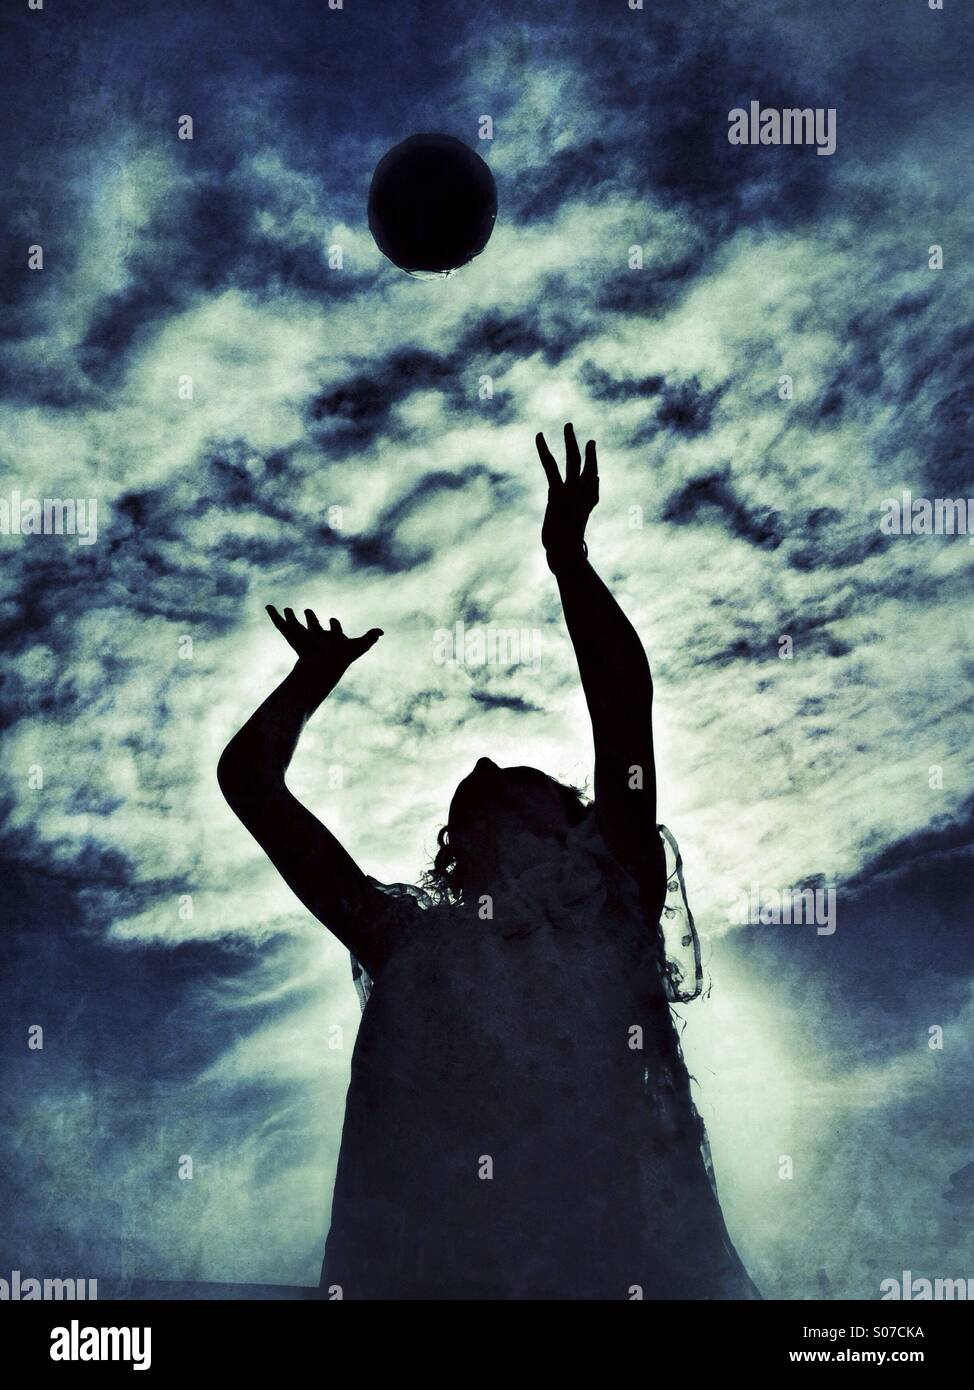 Young girl catching football - Stock Image